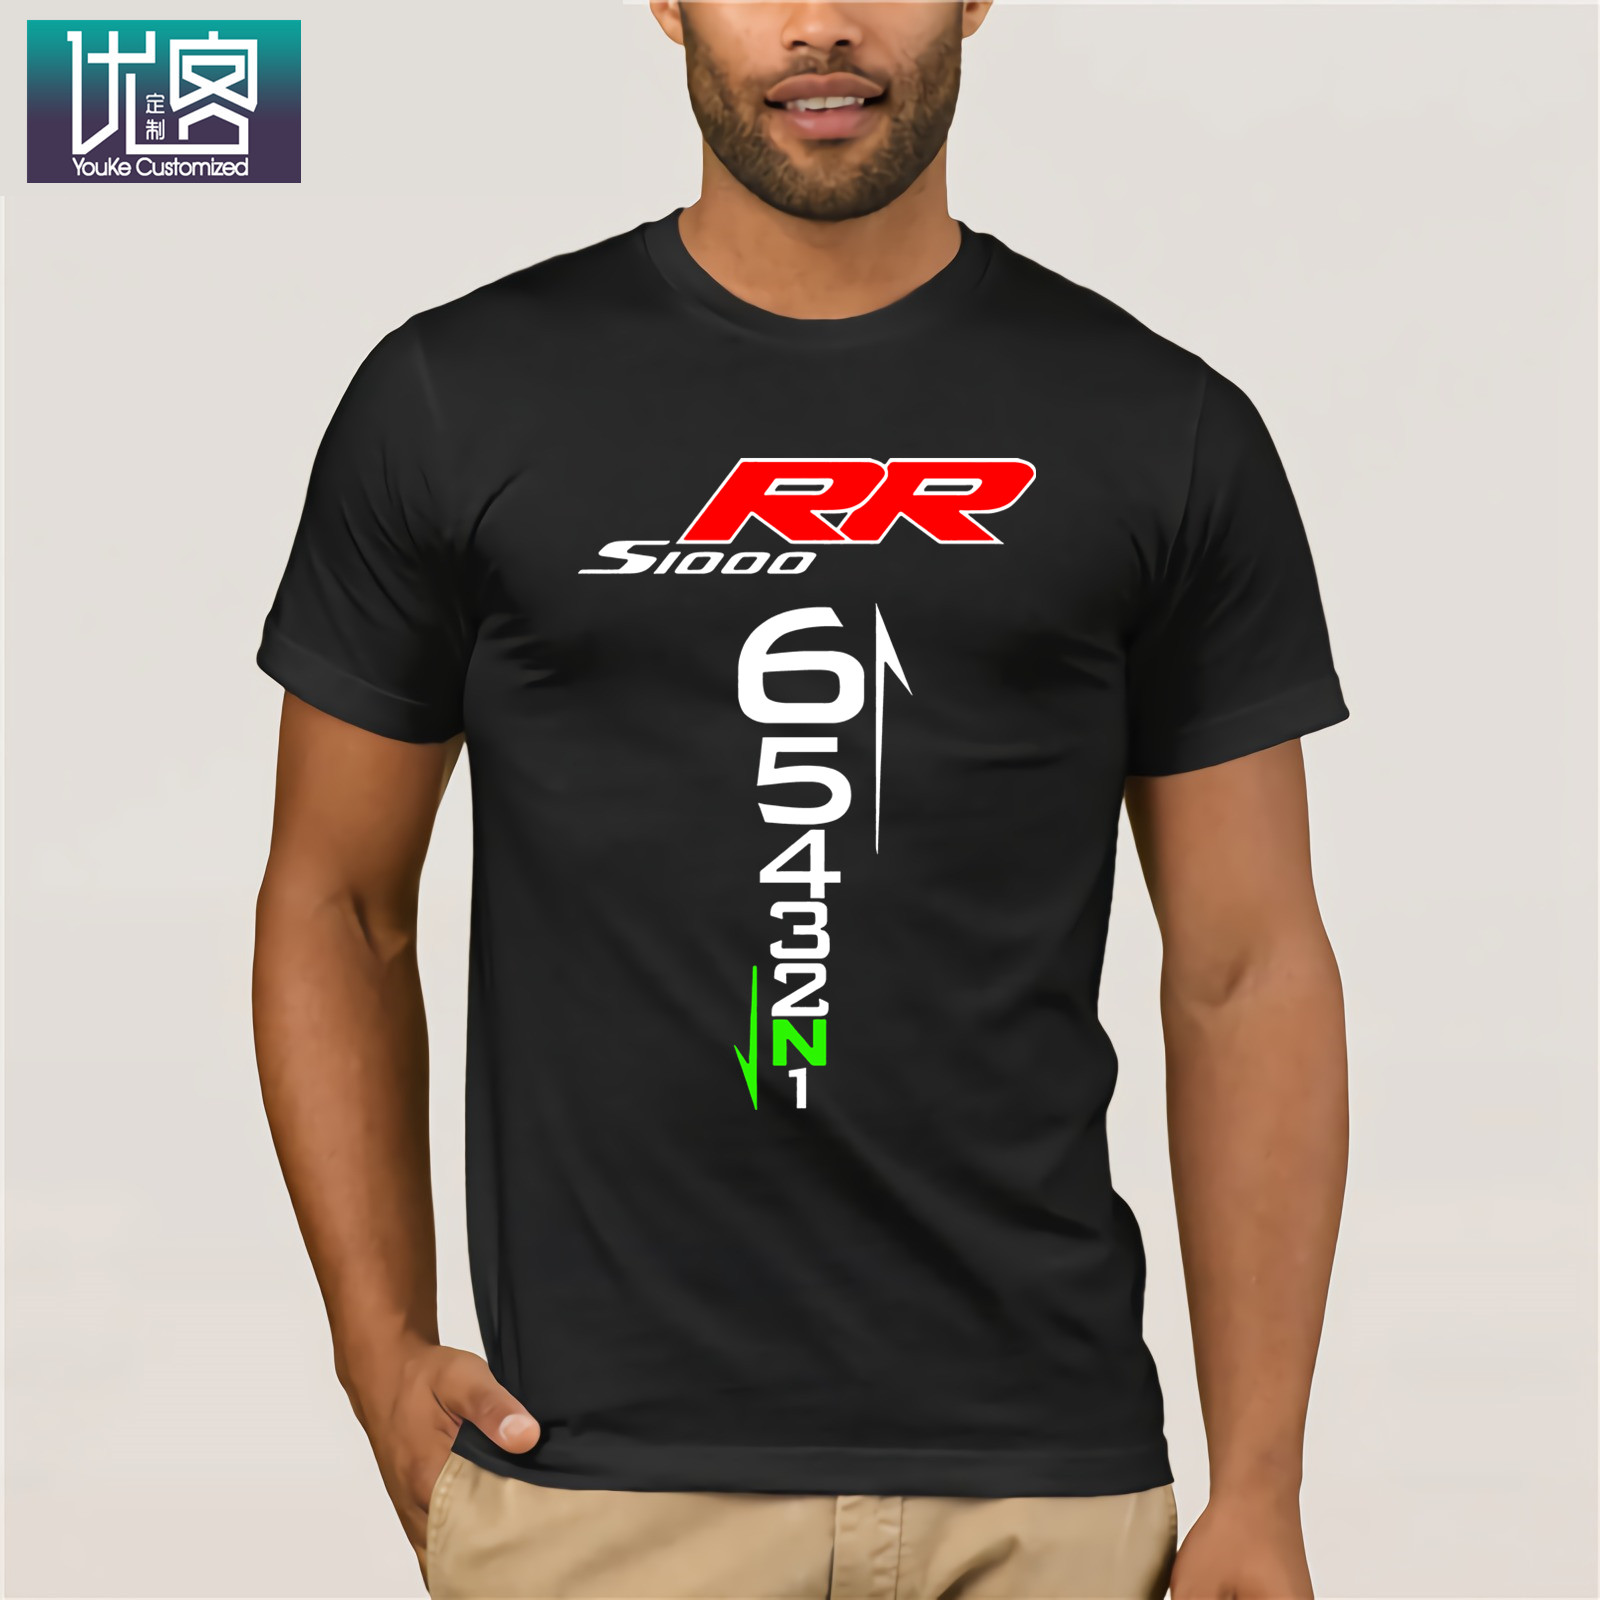 S1000XR NAKED BIKE MOTORCYCLE LOGO T-SHIRT Mens T Shirt Summer O Neck 100% Cotton Men Short Sleeve Tee Cotton Tee Shirt Present image